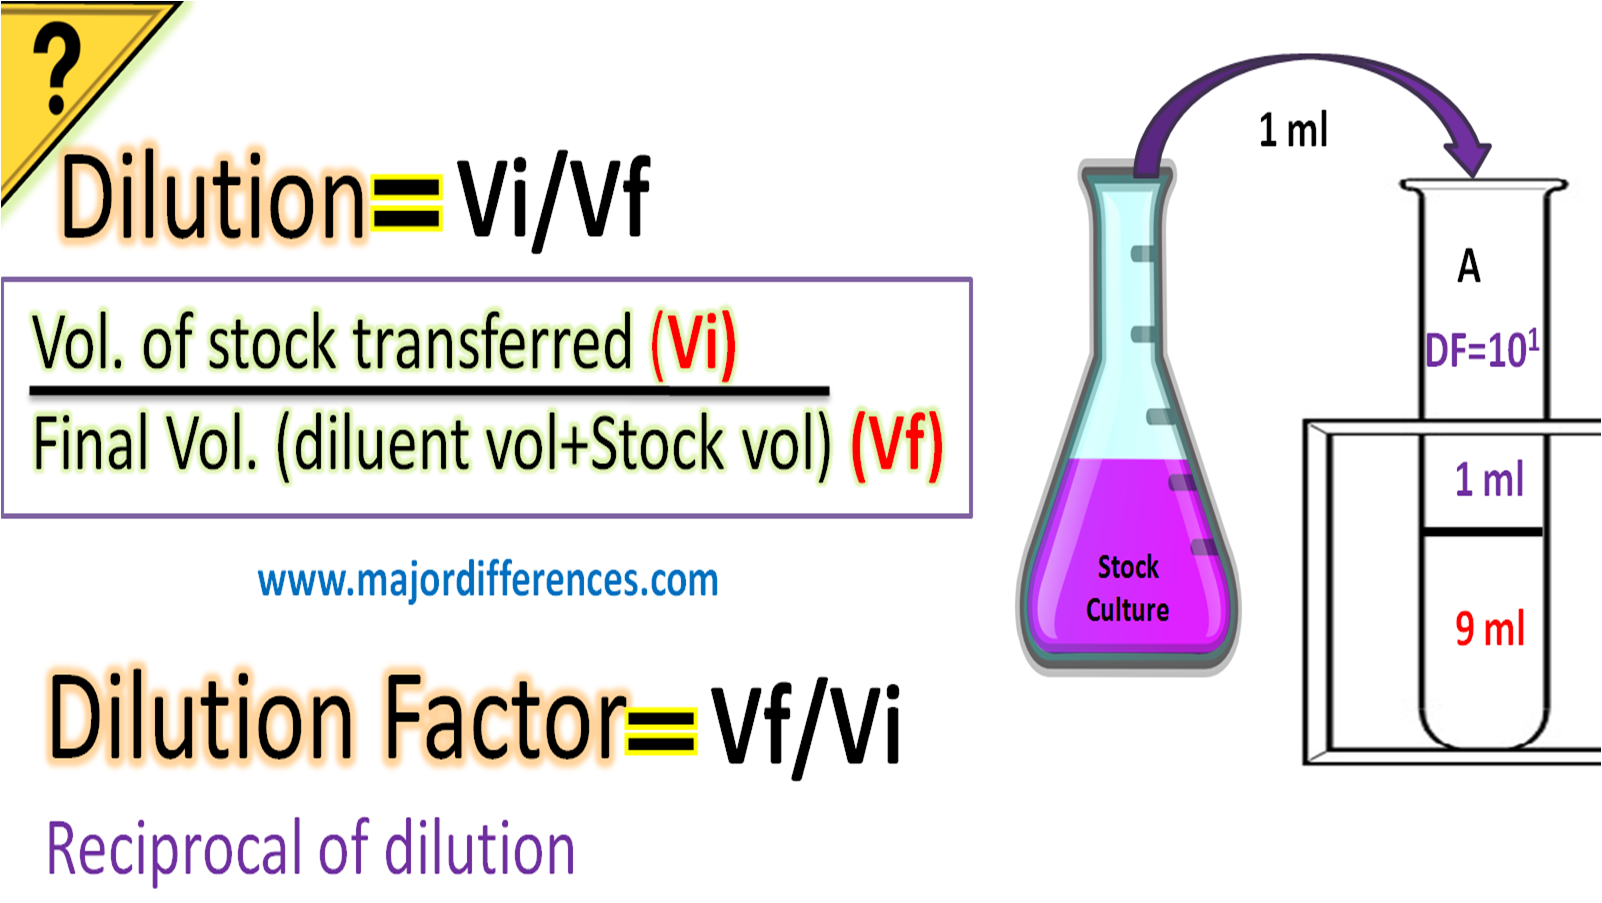 Difference between Dilution and Dilution factor in Microbiology